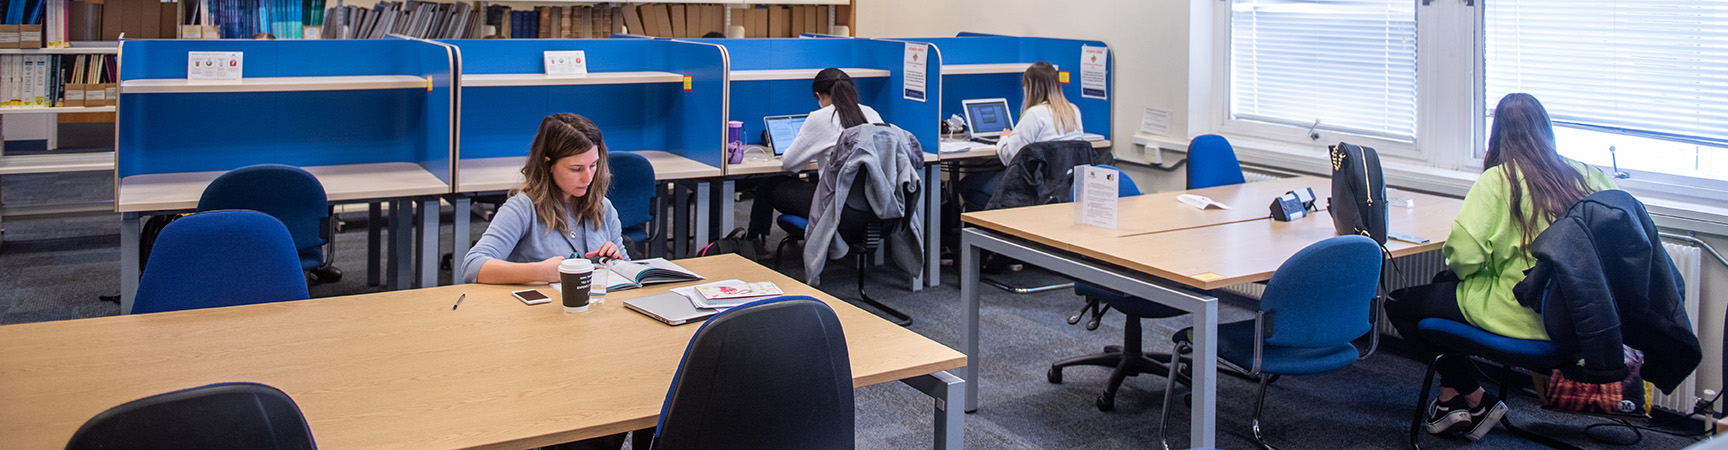 Tables in a room - some have blue separators - students are dotted about working at the desks